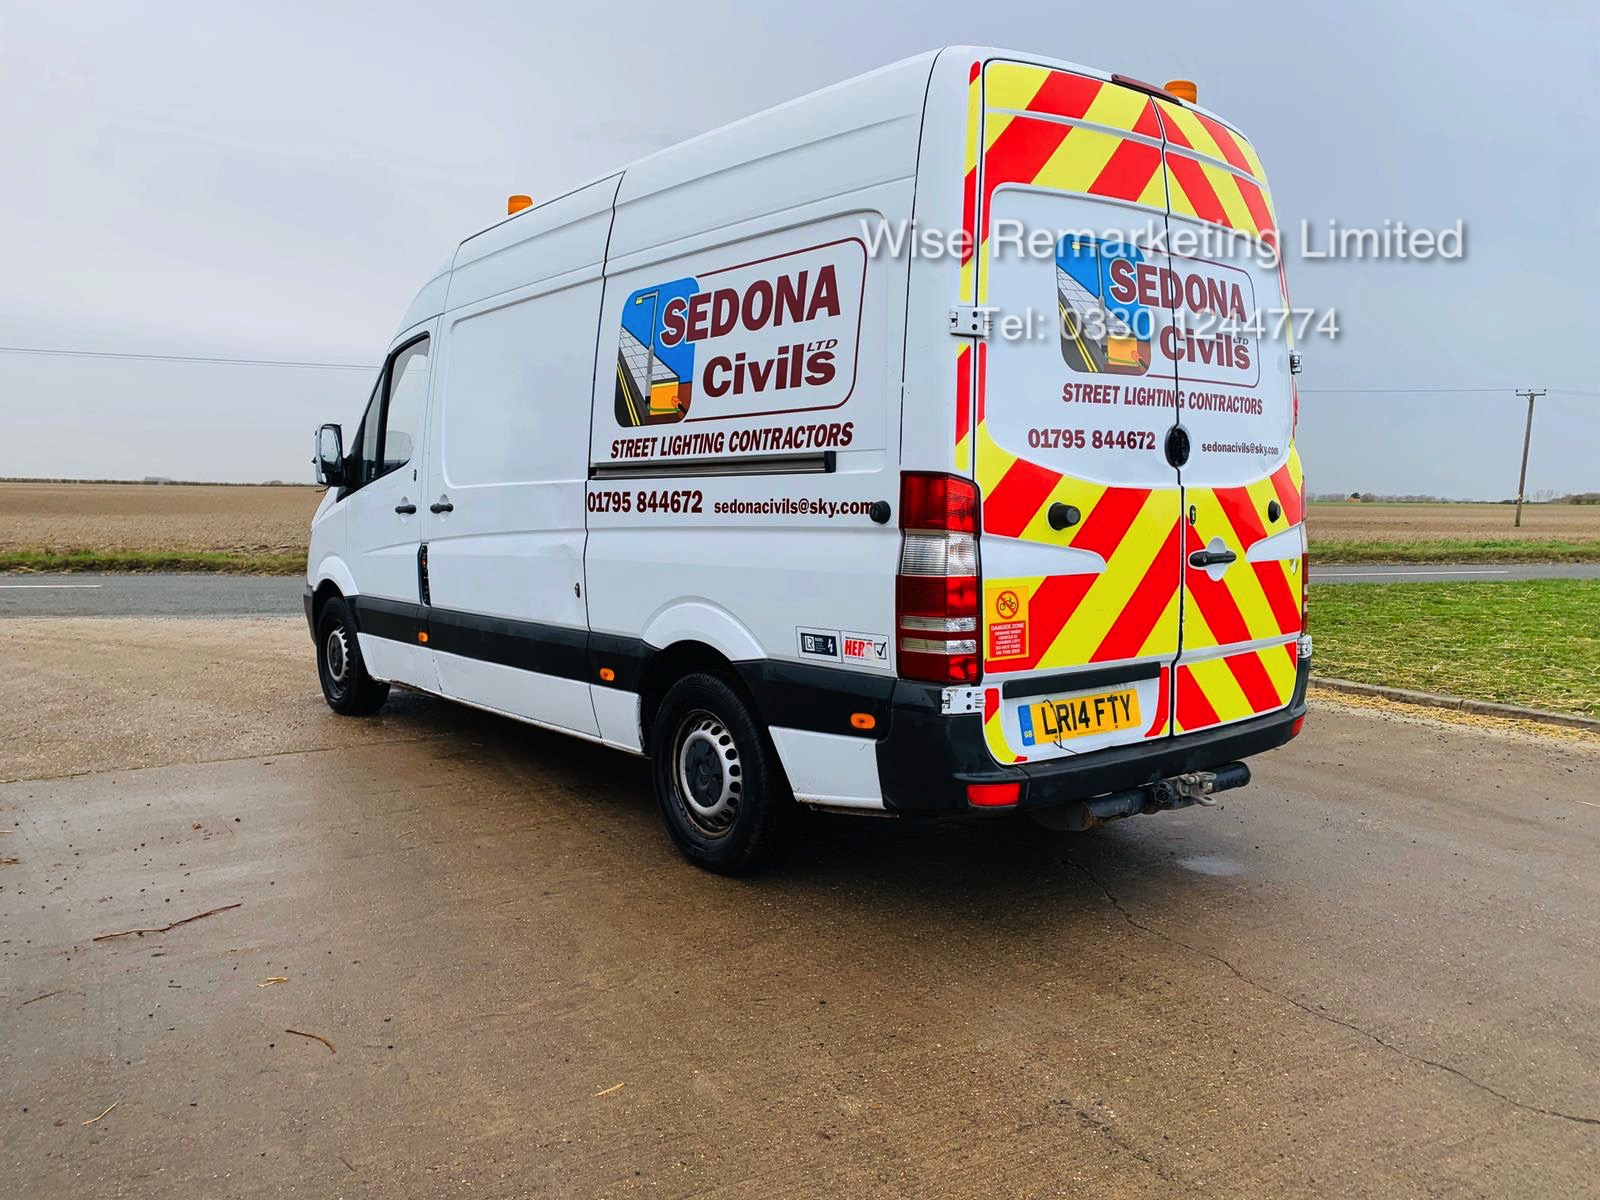 Mercedes Sprinter 313 2.1 CDI - 2014 14 Reg - 6 Speed - Ply Lined - Company Owned - Image 8 of 18